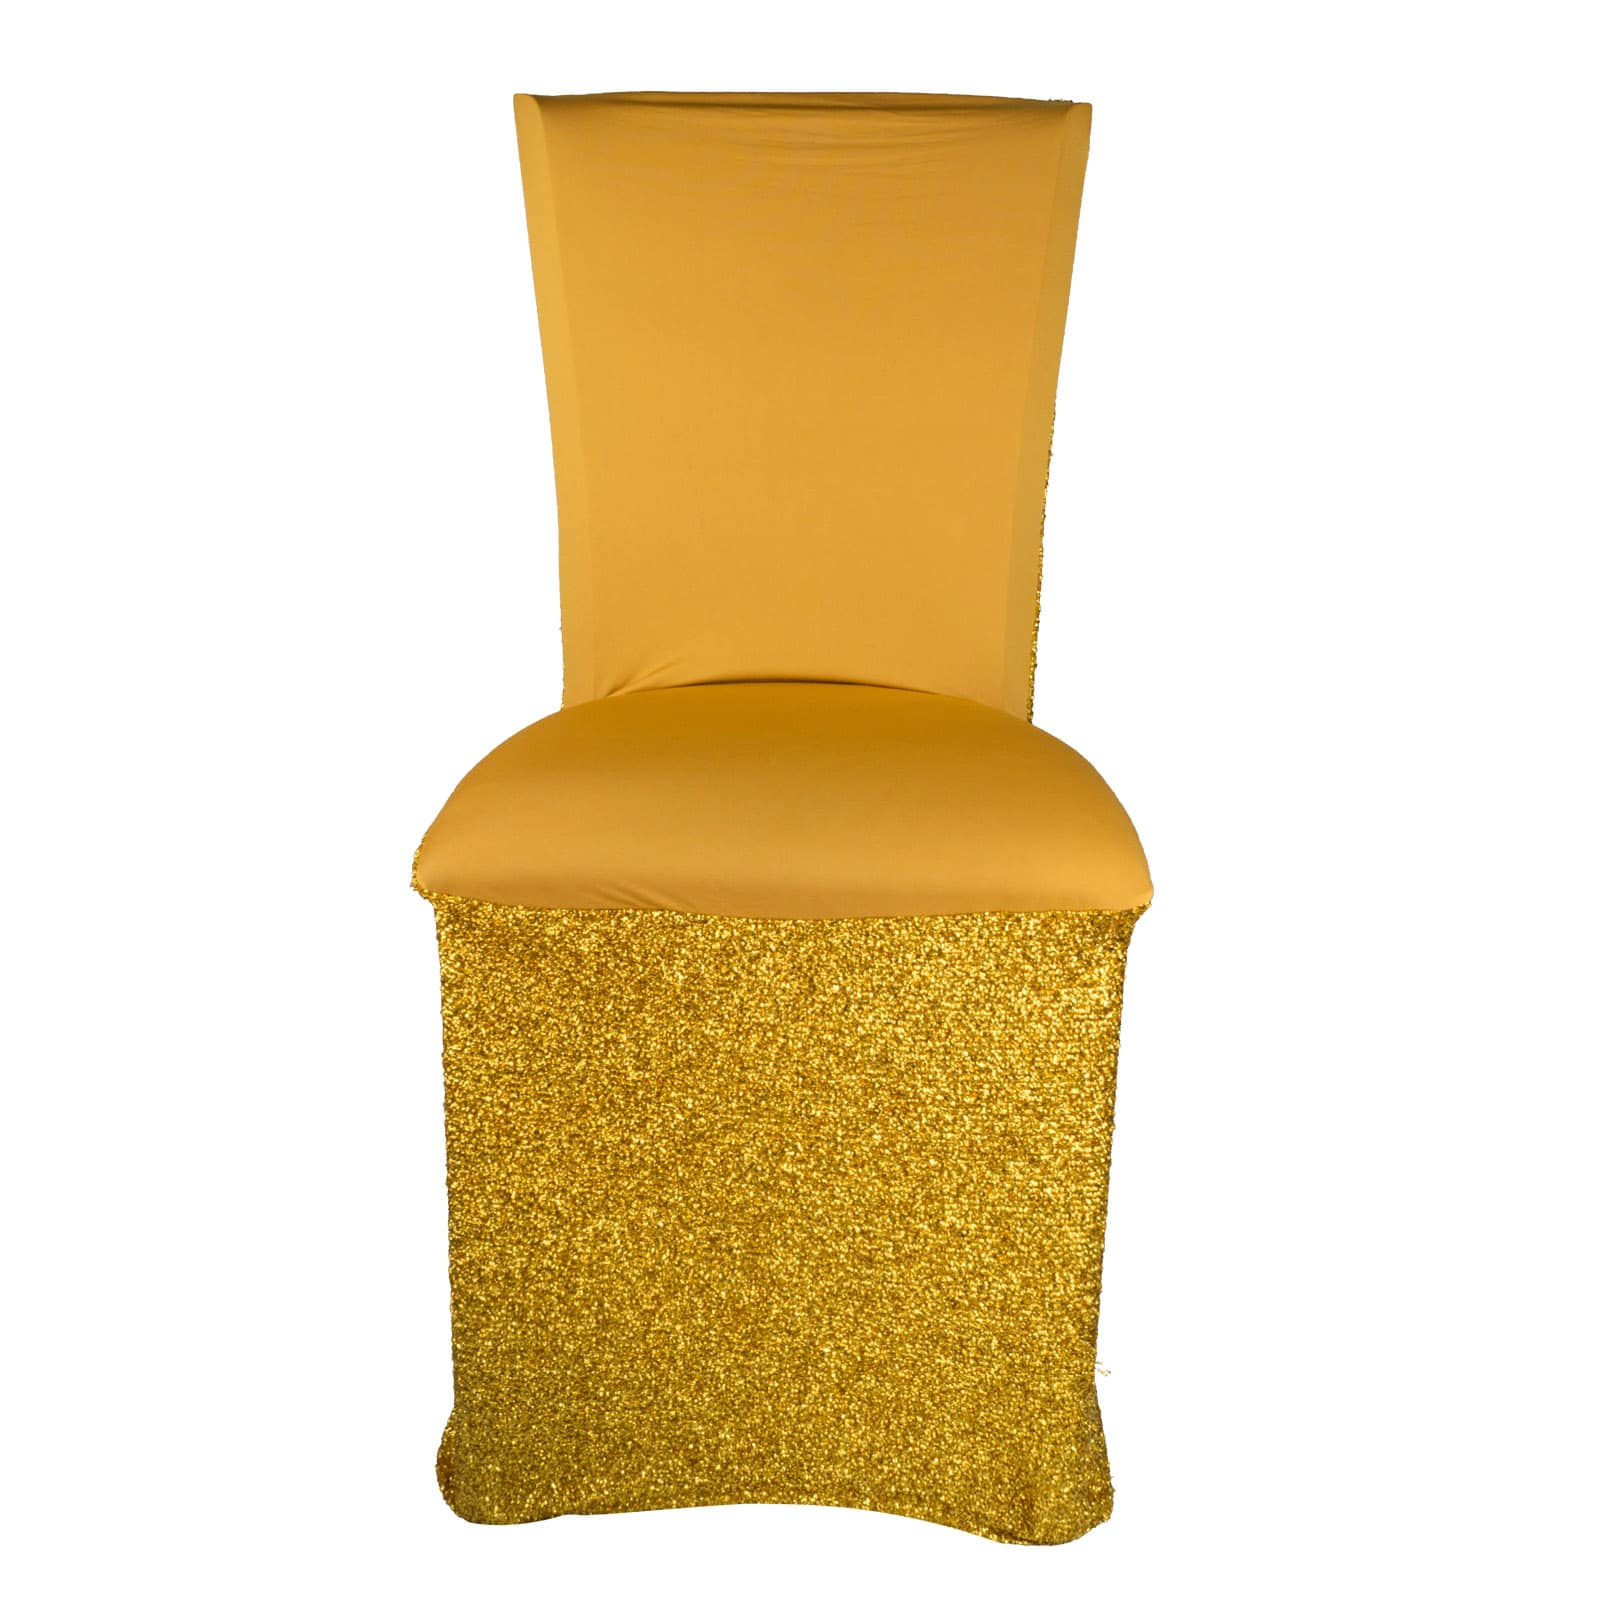 black spandex chair covers amazon u shaped elegant gold rtty1